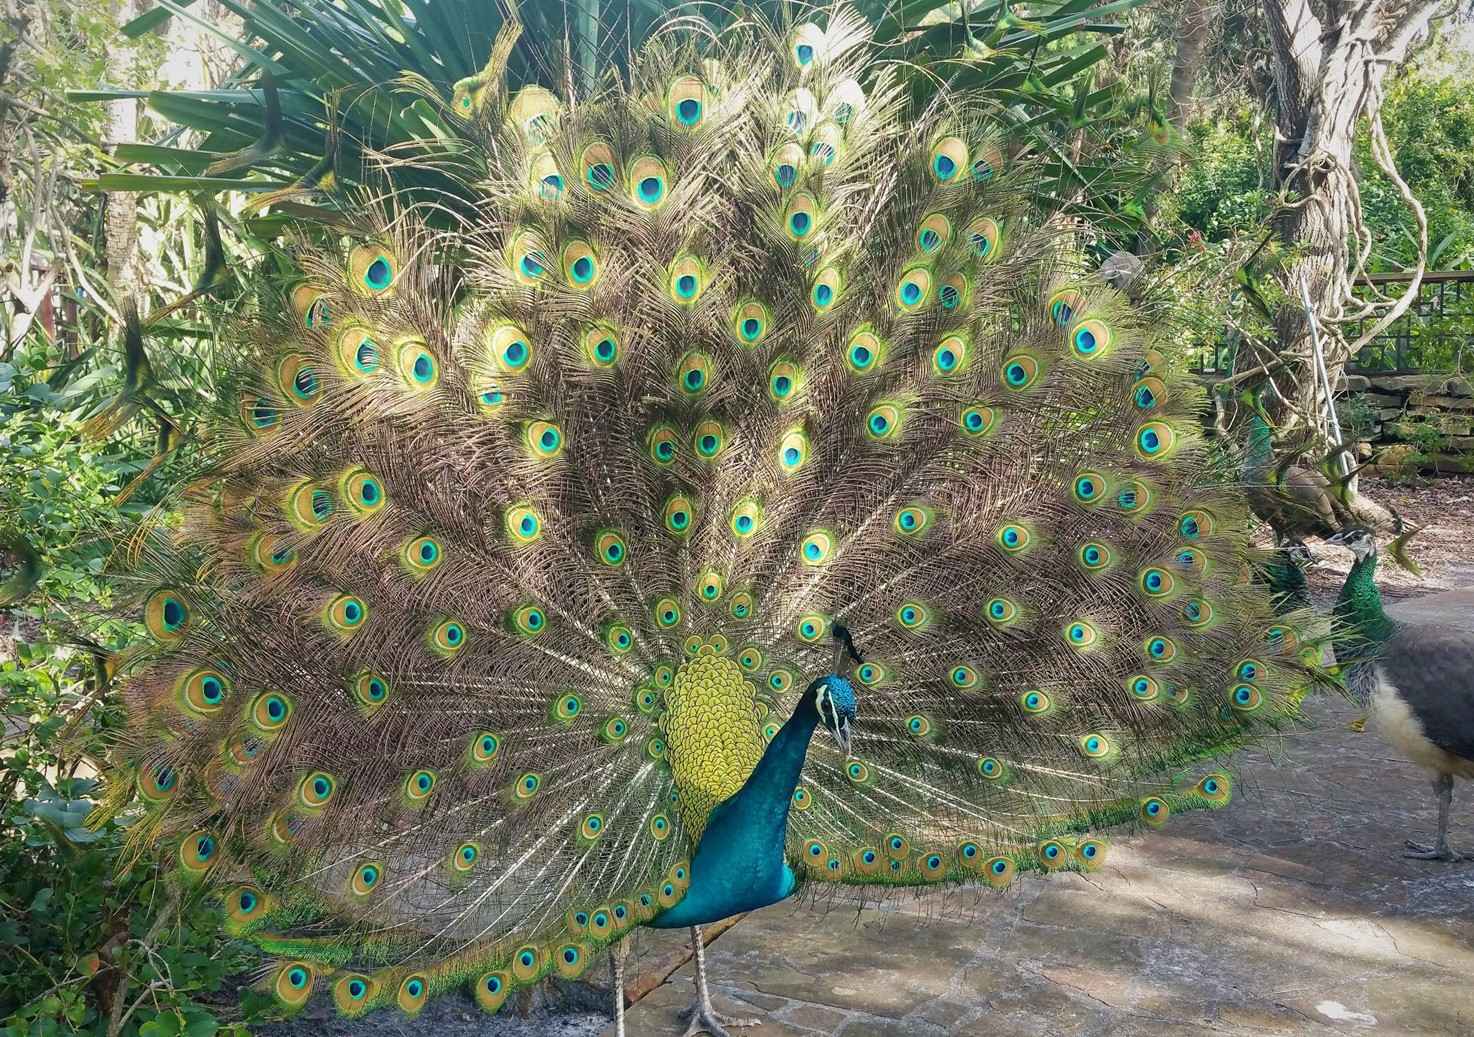 A huge, colorful peacock